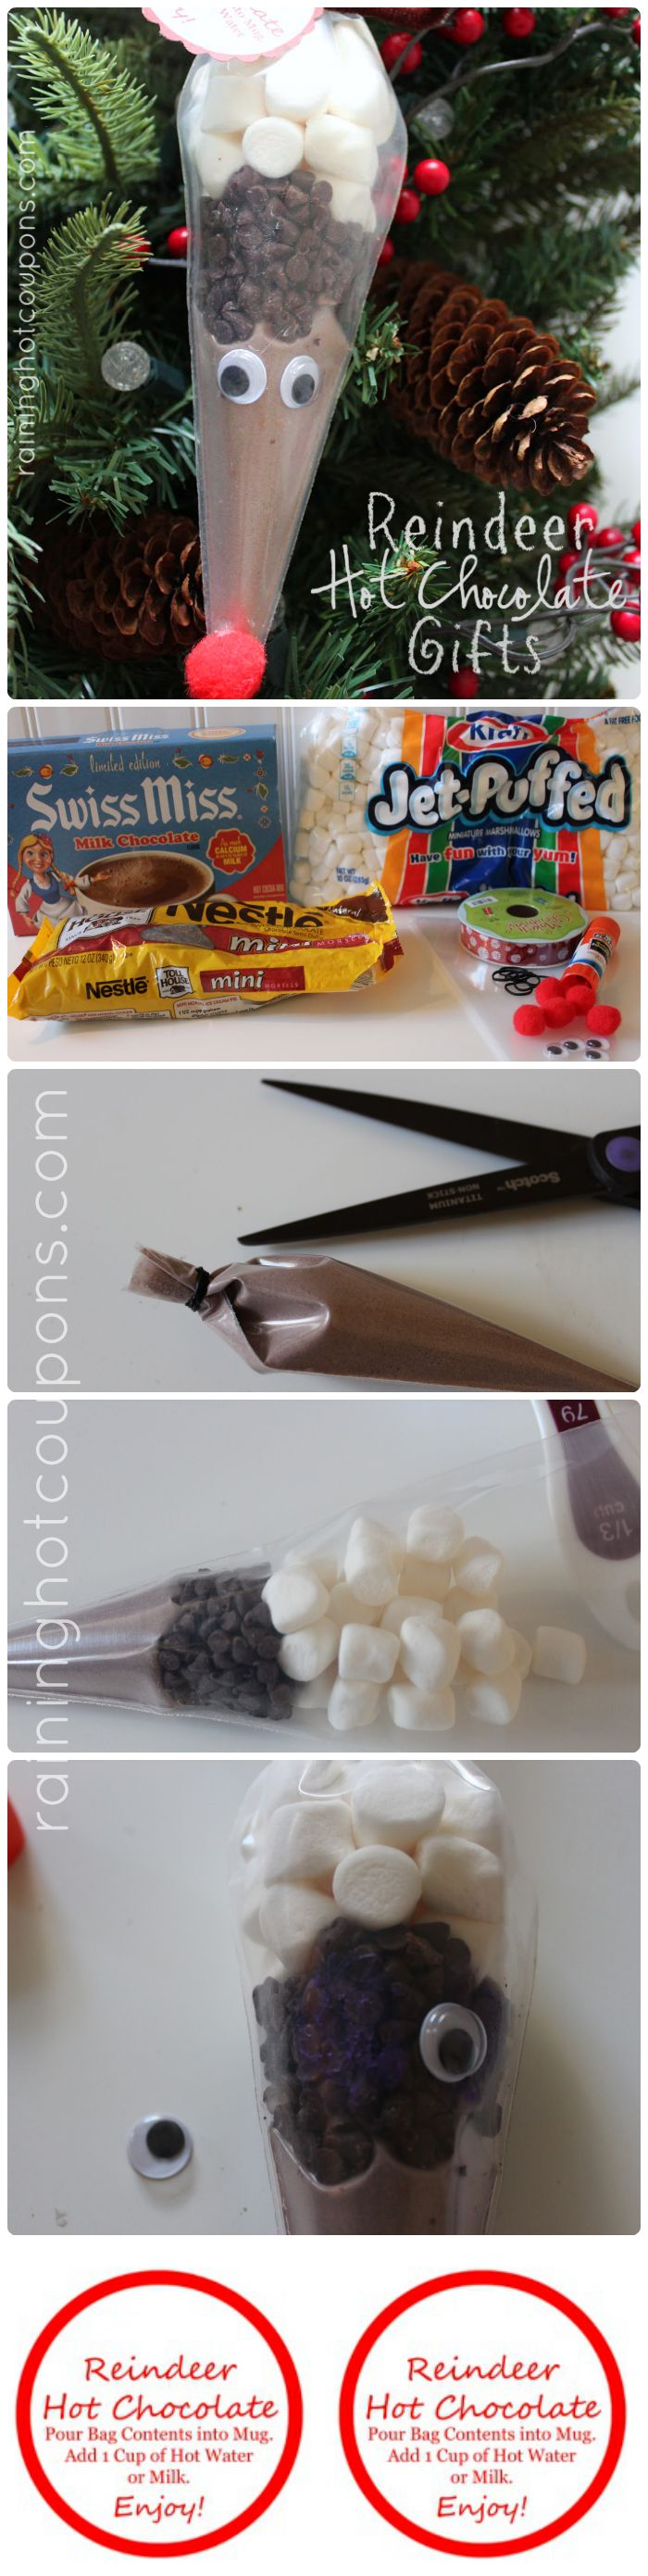 Best 20+ Chocolate gifts ideas on Pinterest | How to make candy ...